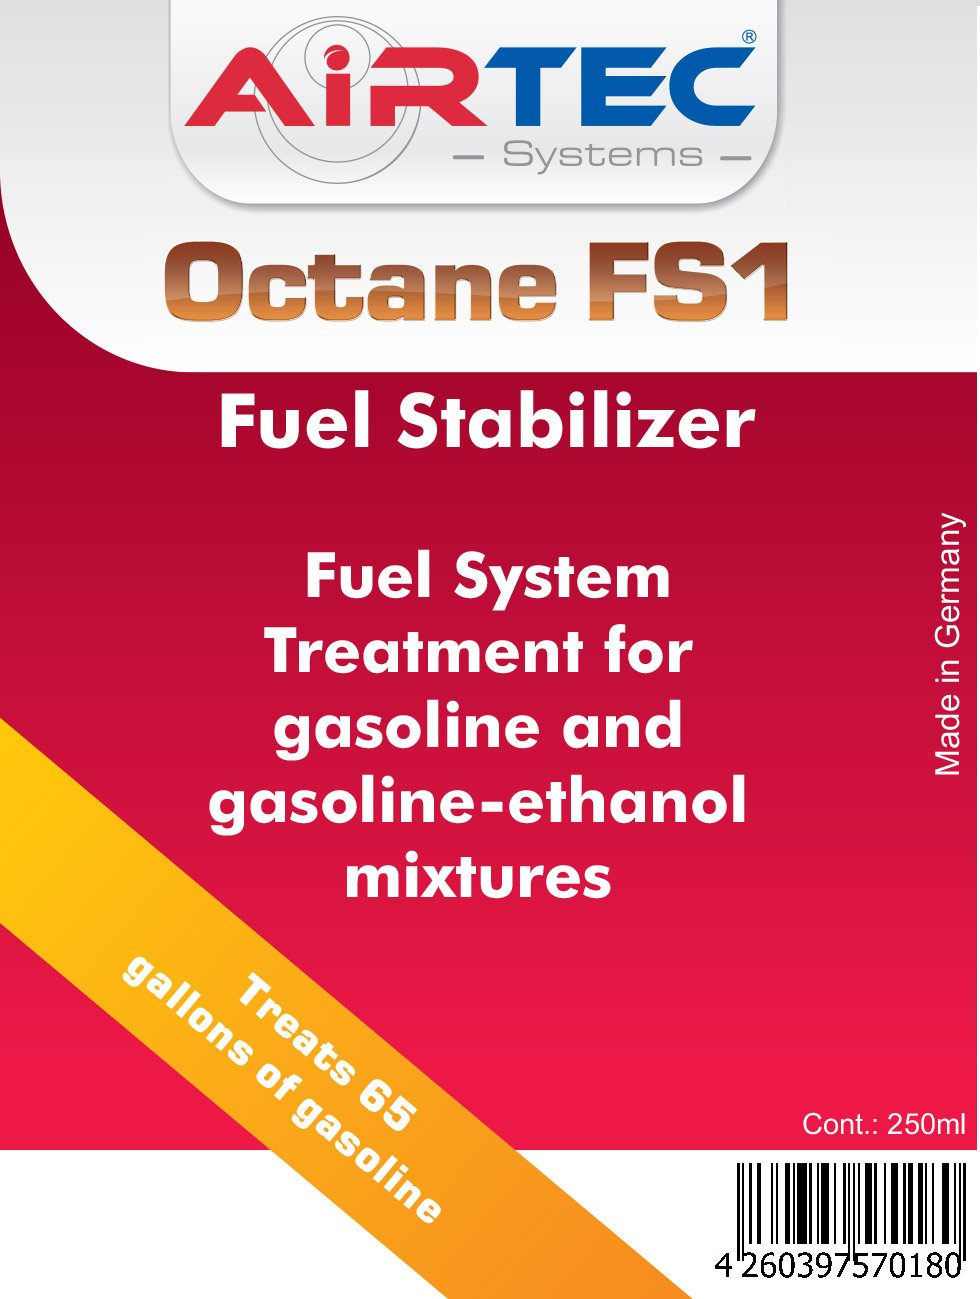 wagner fuel additives